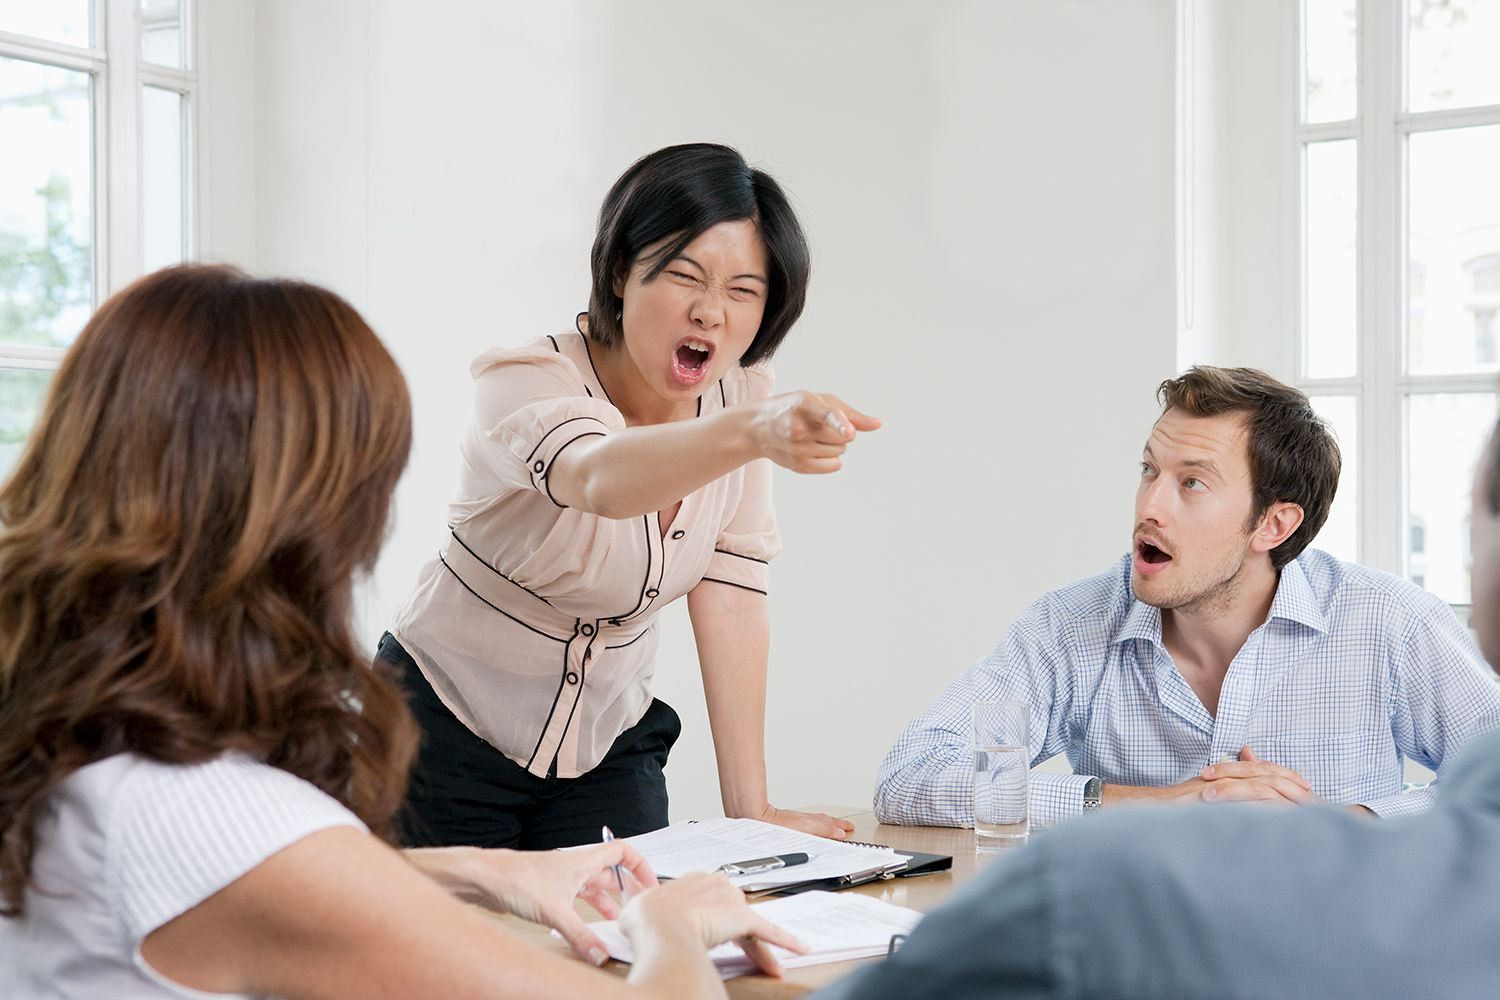 Female shouting in a meeting